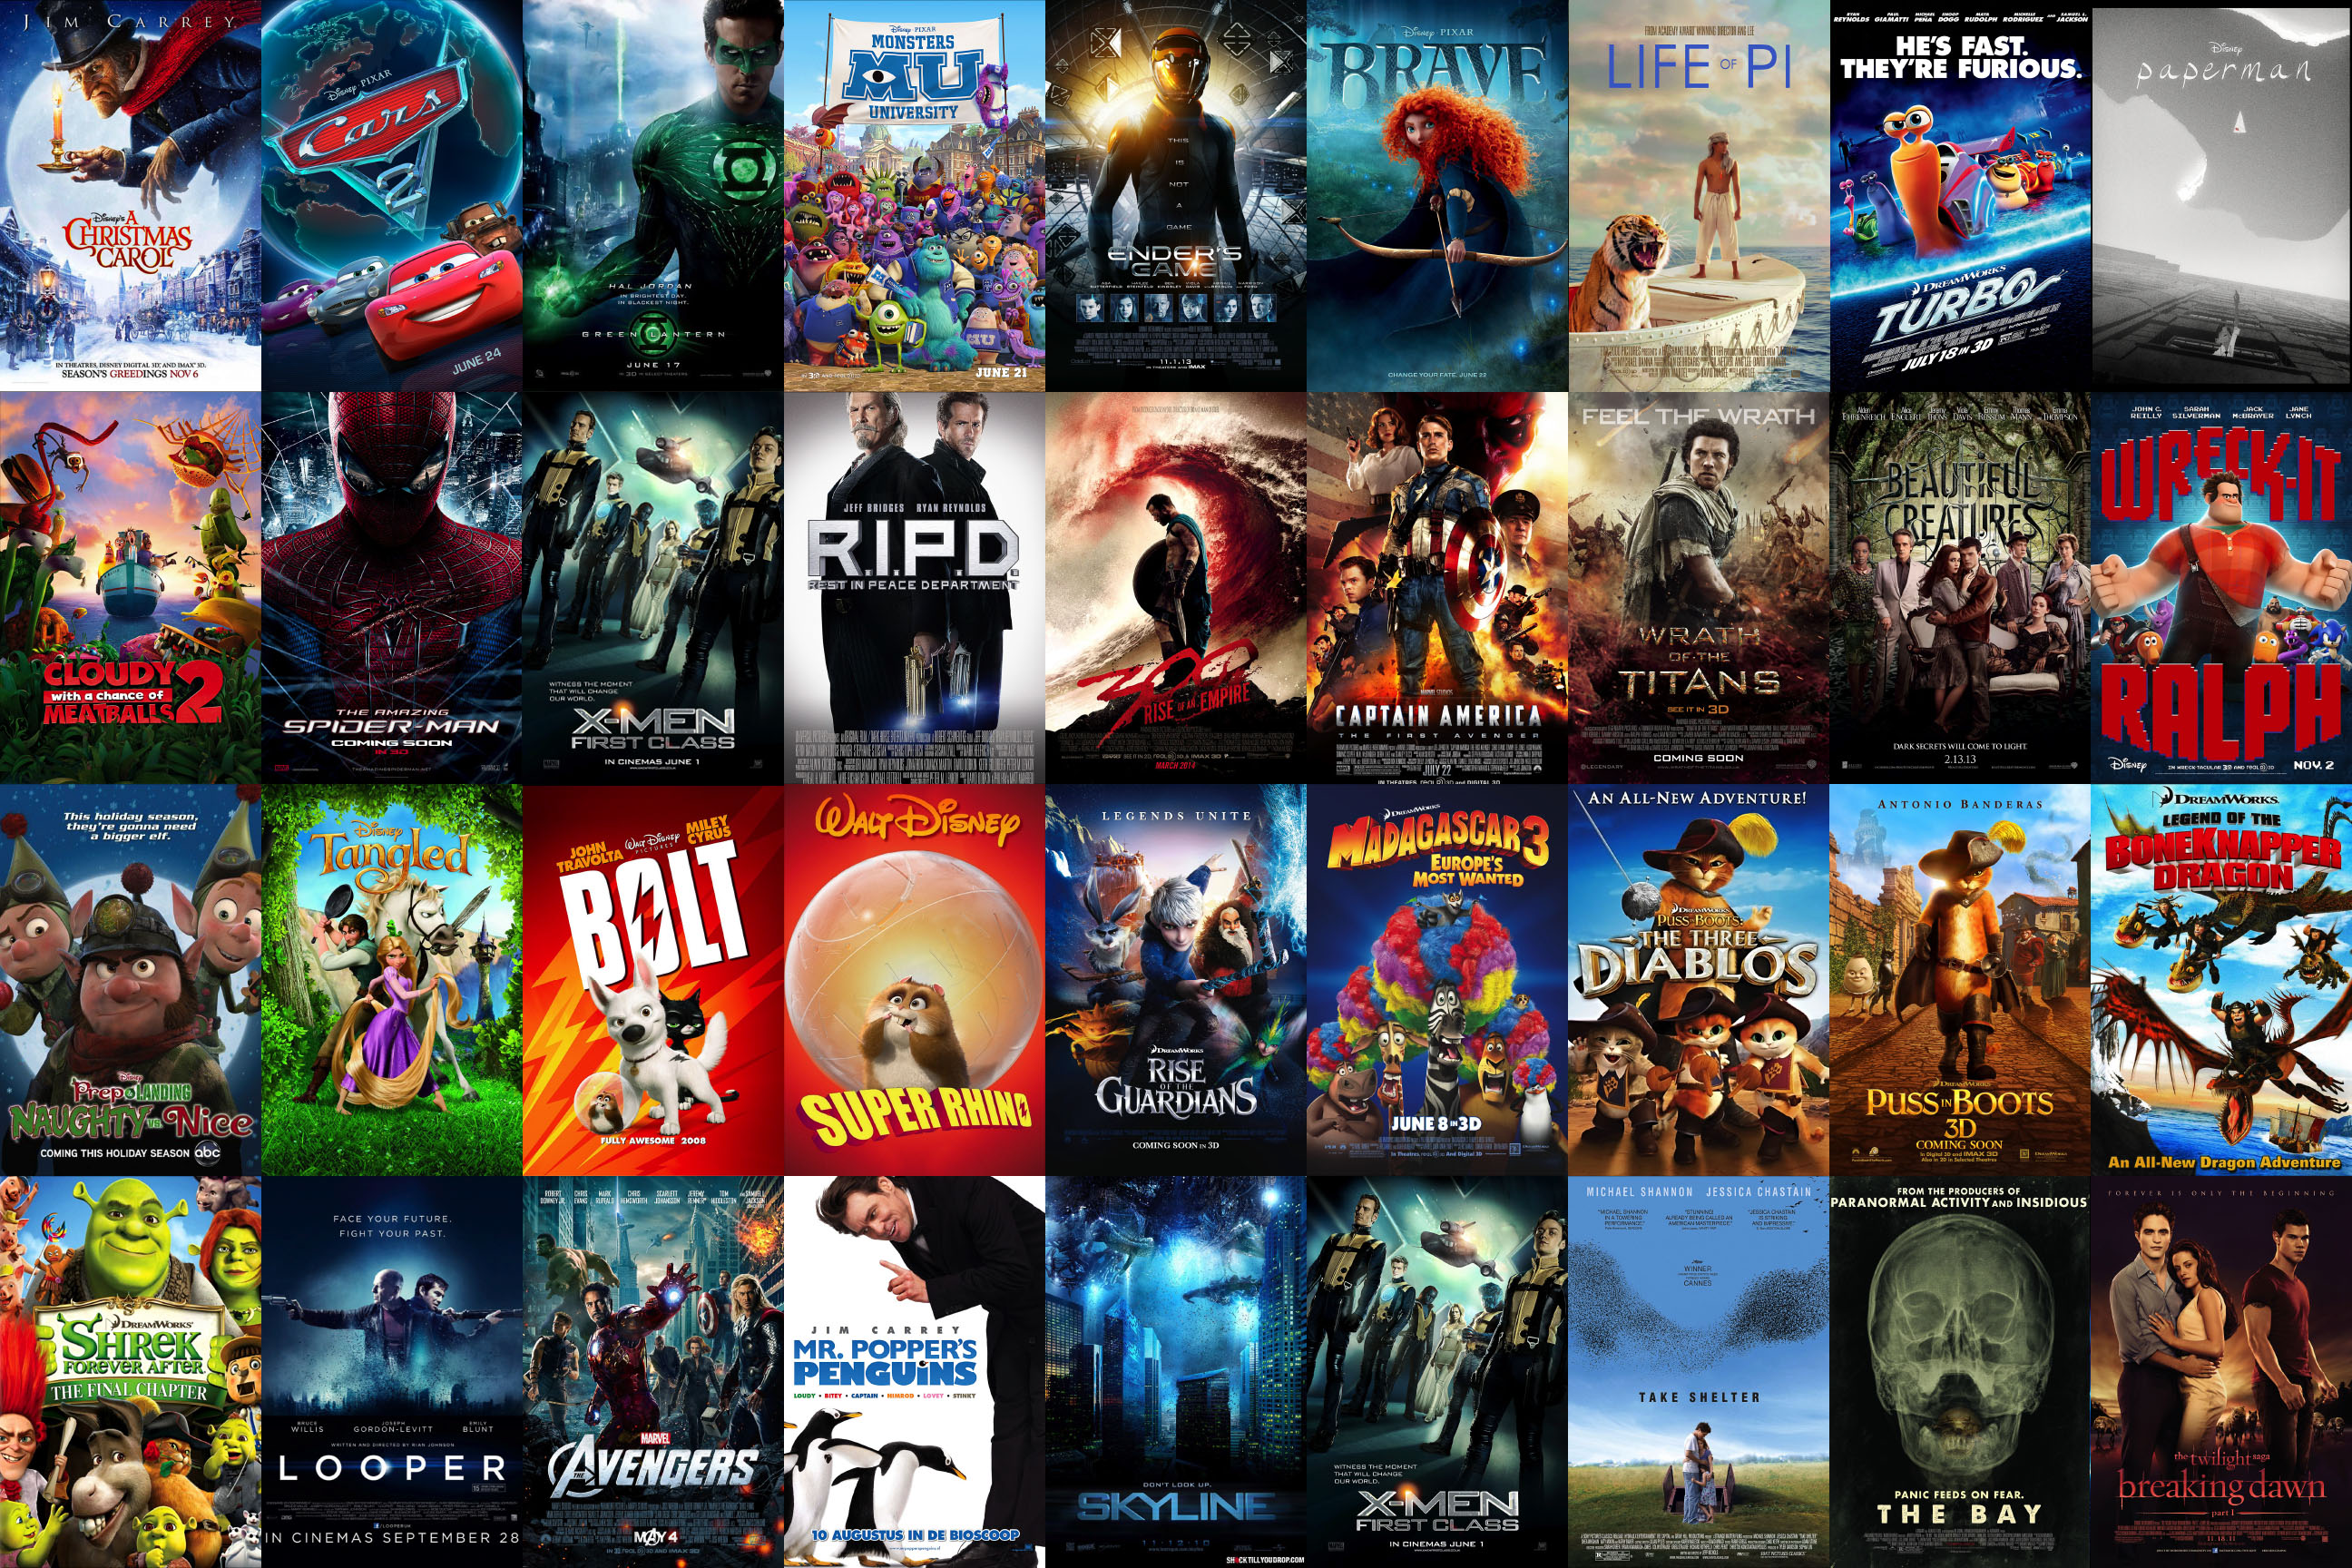 movie sequels movies posters films animation summer poster film feature hollywood collage most than drexel making blockbuster christmas blockbusters lab